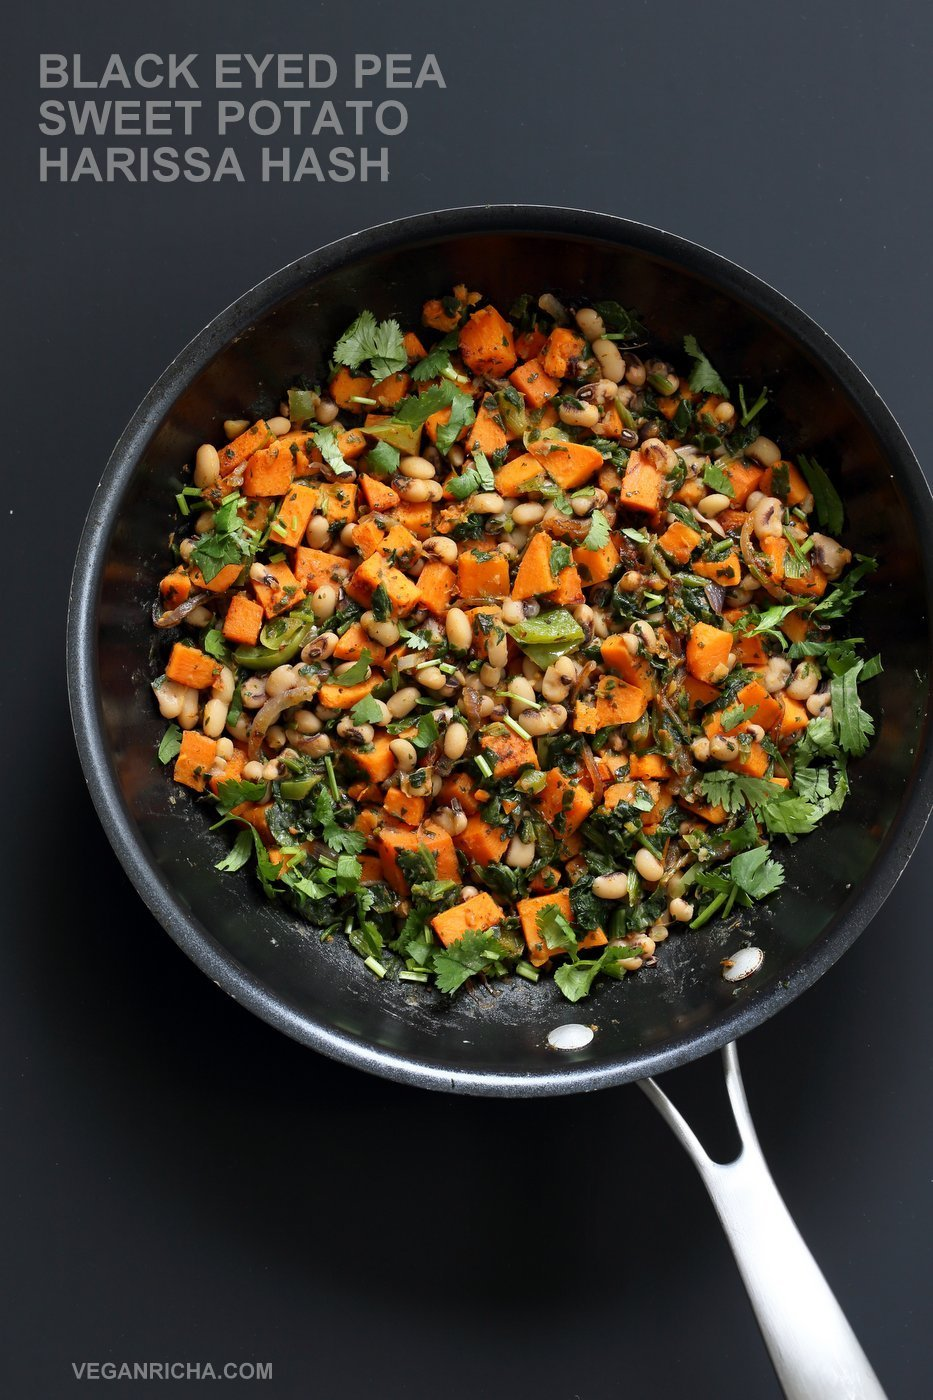 Bring in the new year with this plentiful Black eyed pea and Sweet Potato Hash with Harissa Spice. Ready in 20 minutes. Serve over toast with a creamy dressing or avocado. Vegan Gluten-free Soy-free Recipe